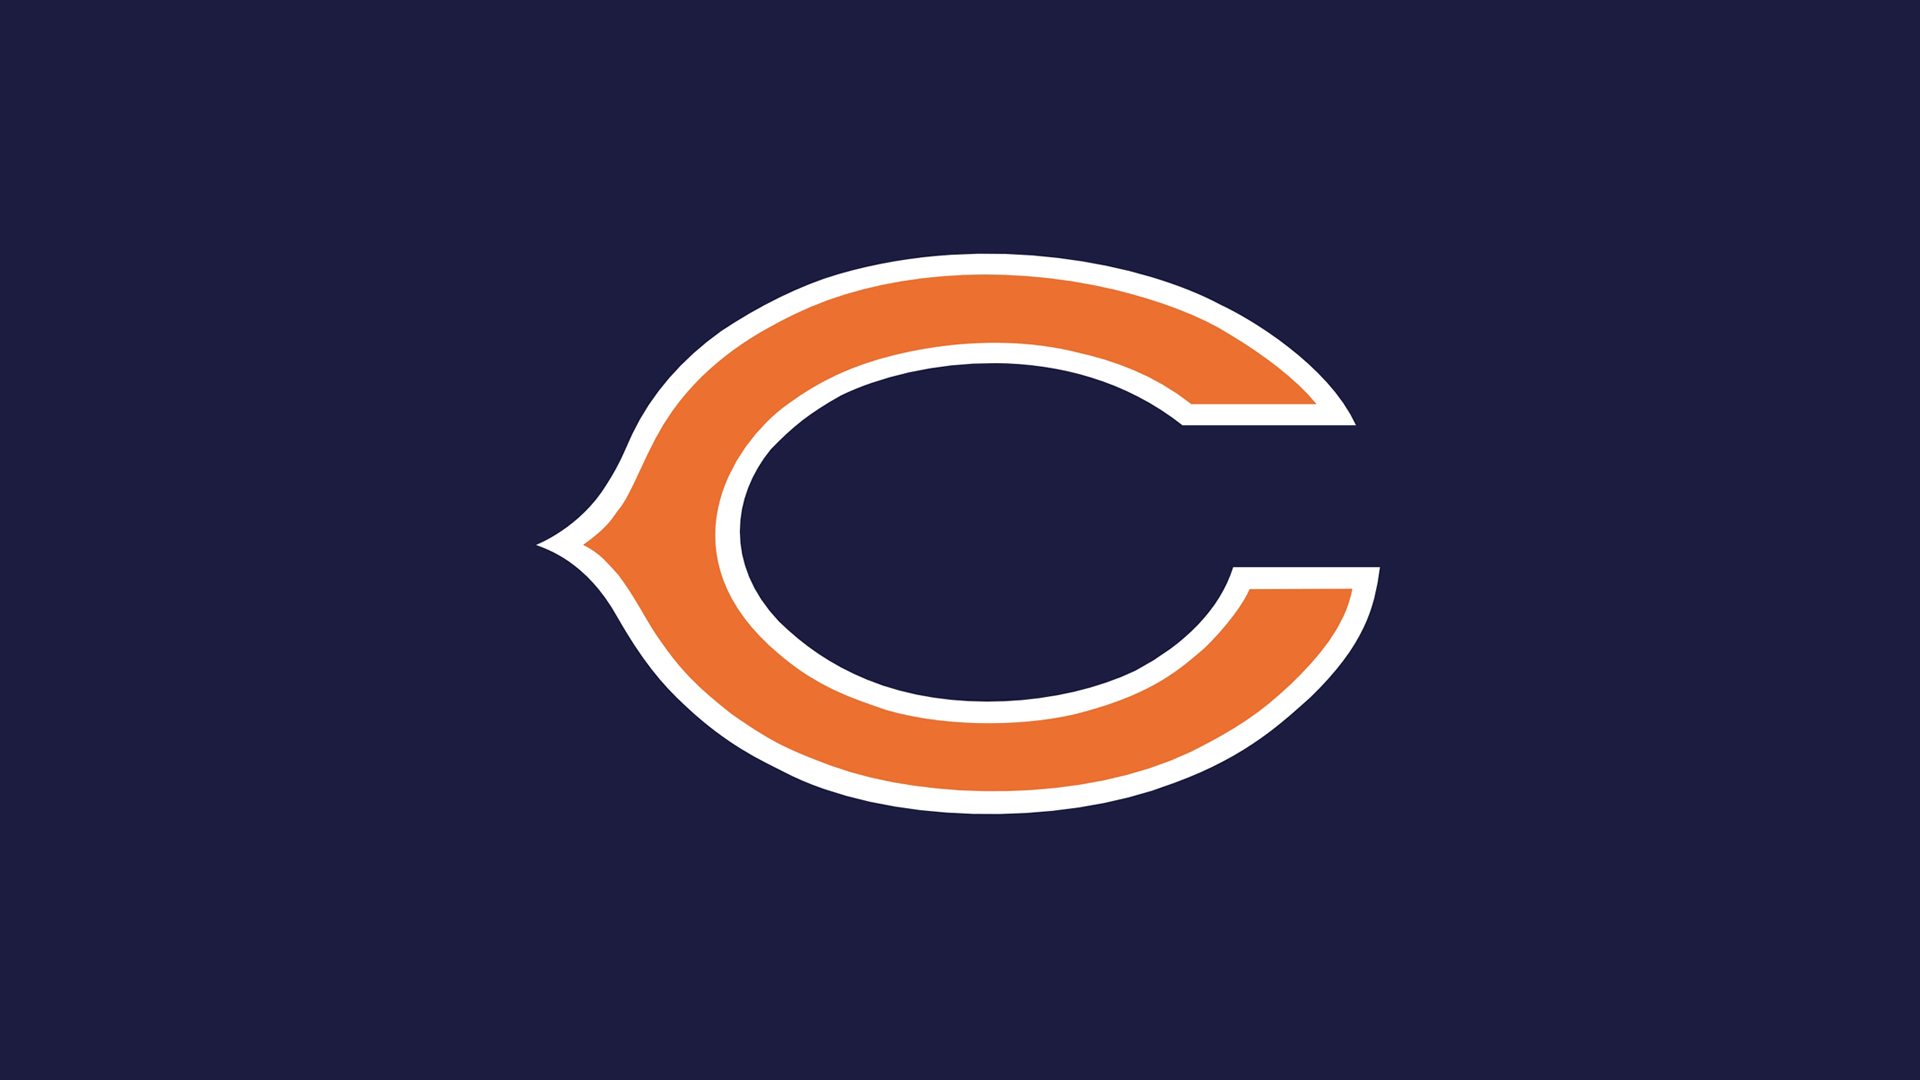 Bears Bounce Back After Three-Game Skid